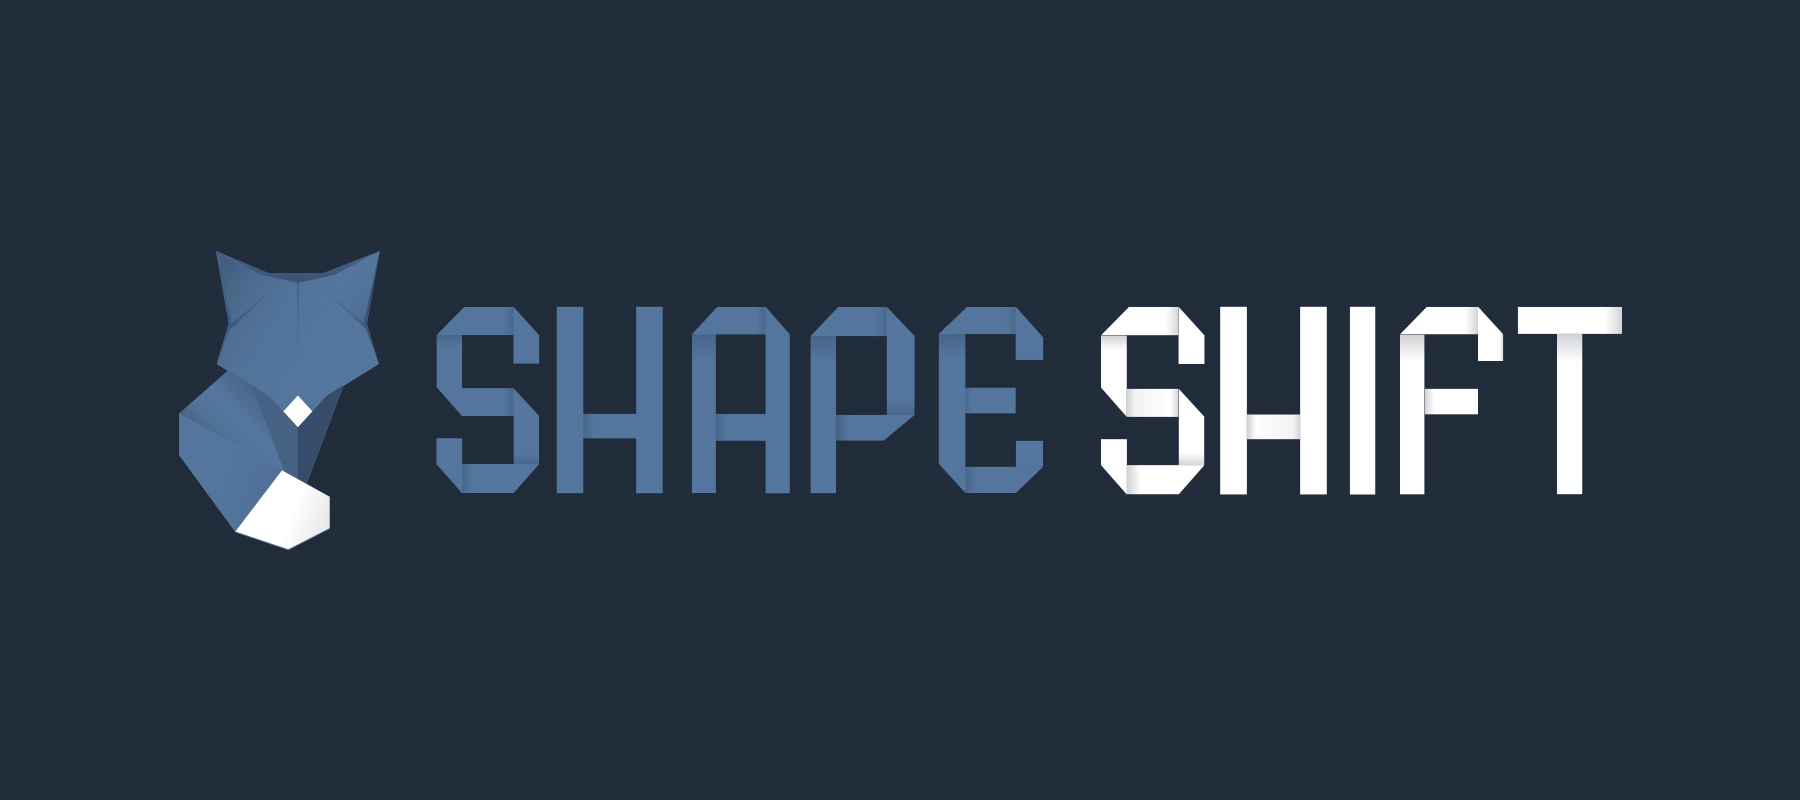 The ShapeShift technology is built into the Exodus Wallet, transactions are the quickest, but fees are the highest. Also has a mobile app, however the app has less currencies to choose from than the full web-based version.